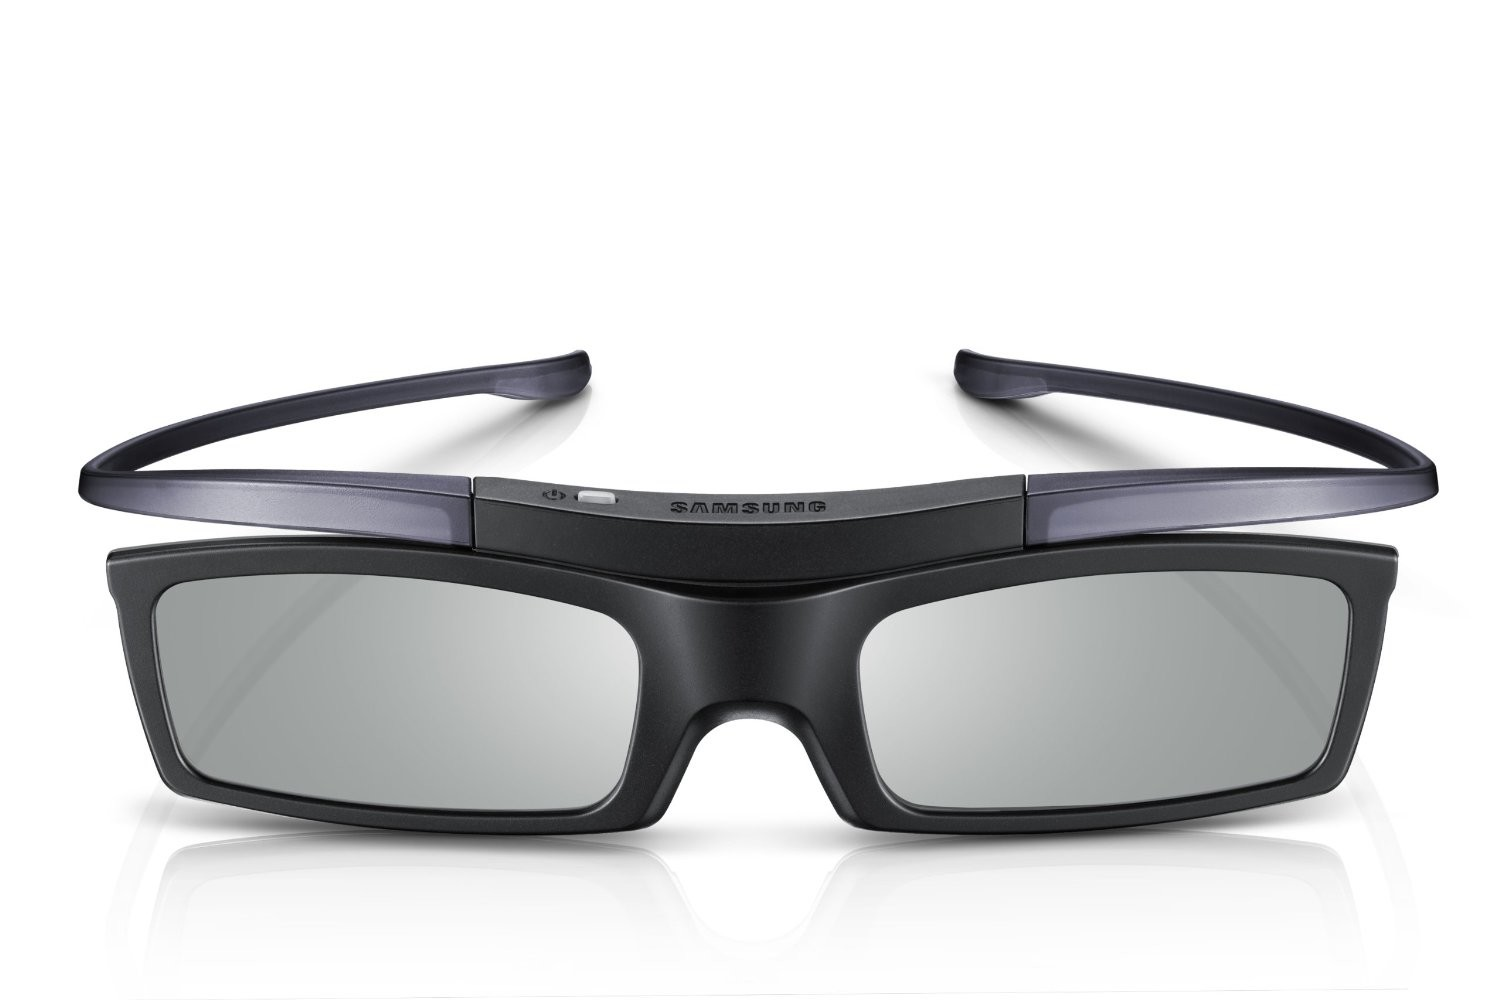 Samsung SSG-5100GB 3D glasses.